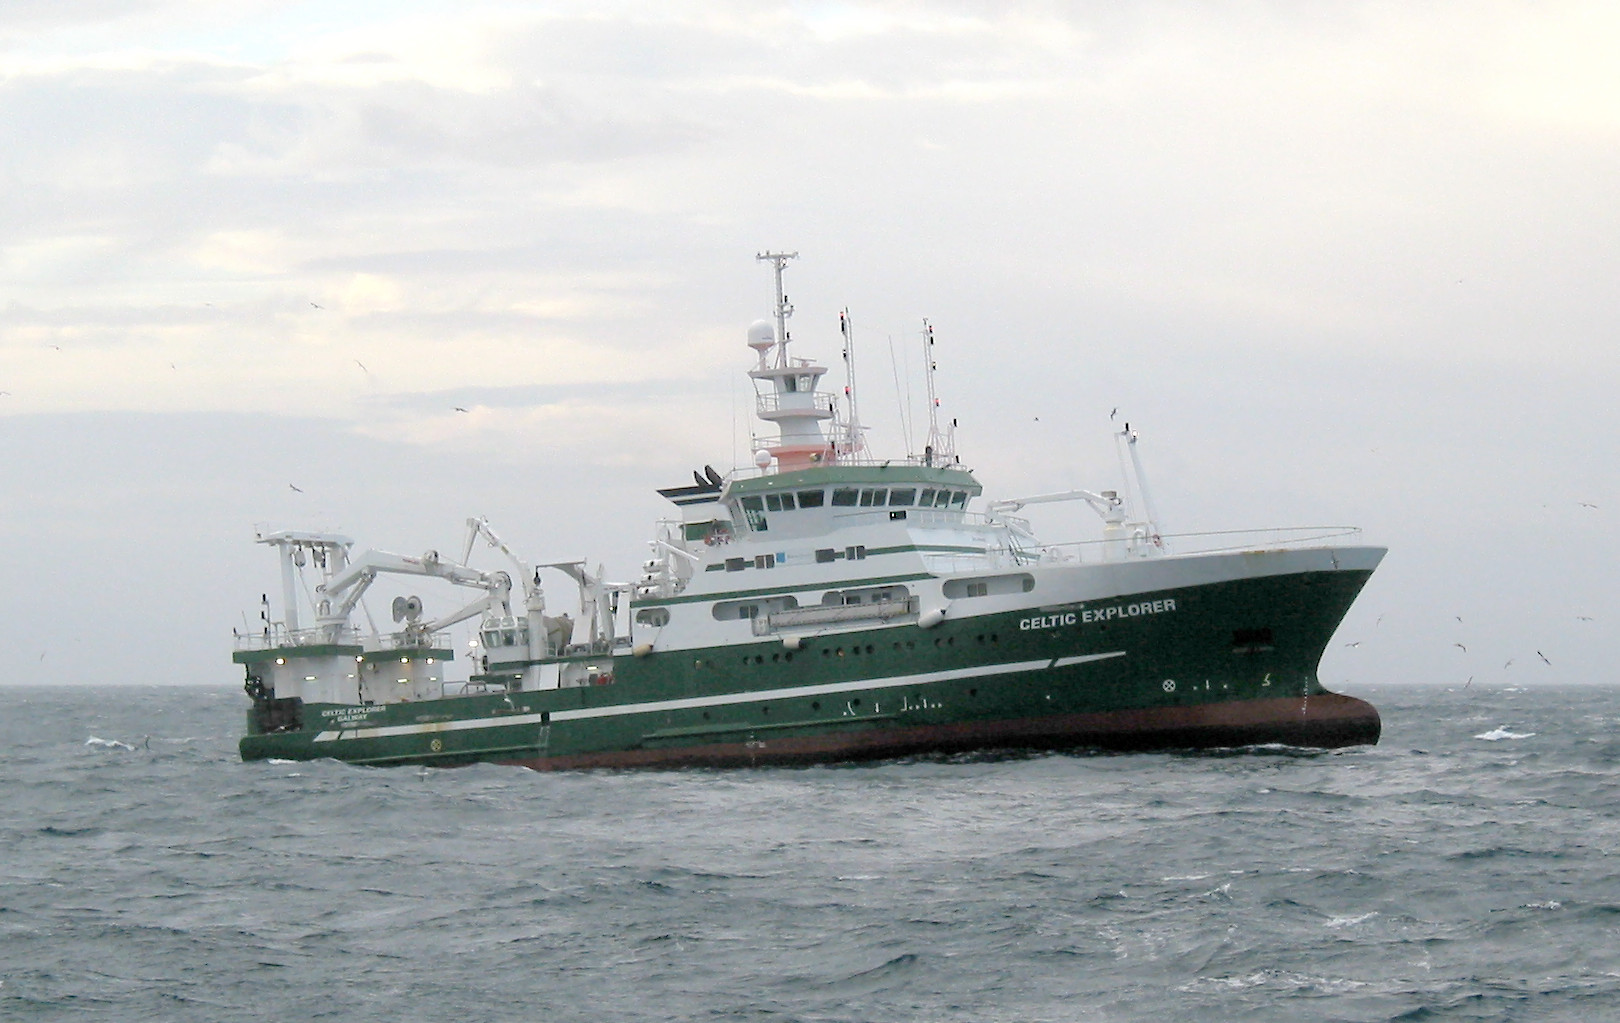 RV Celtic Explorer, Galway Bay, Ireland.jpg